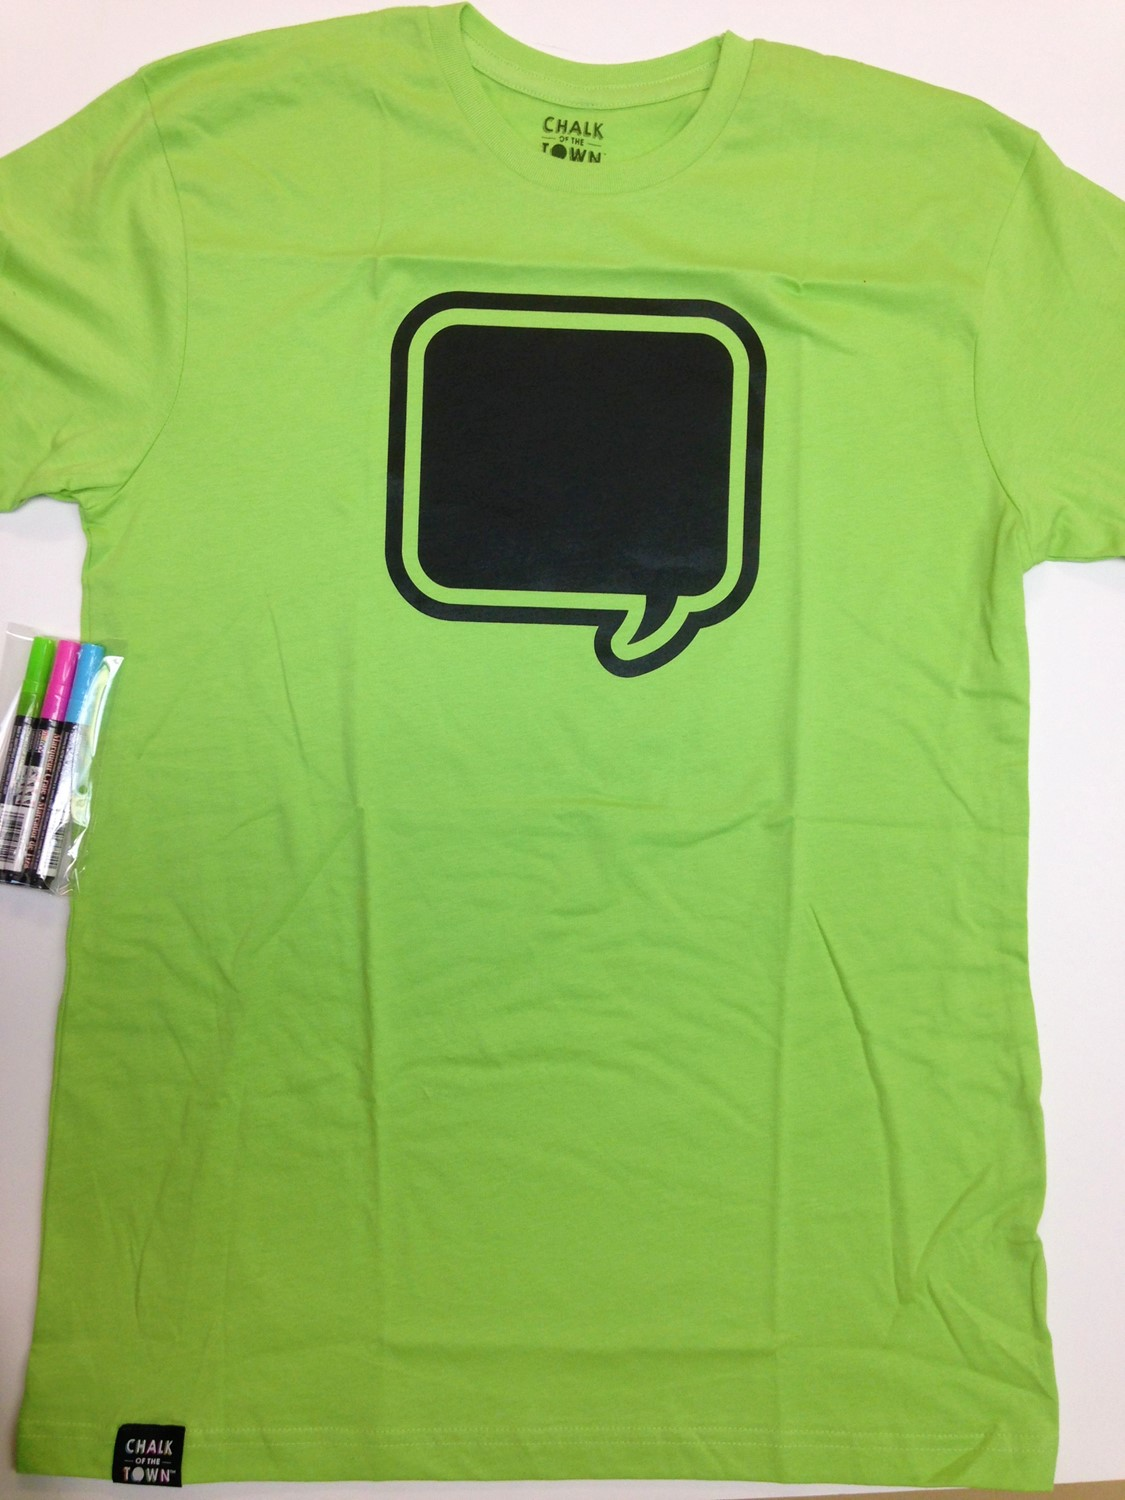 CHALK of the TOWN Chalkboard T-Shirt-Lime Green-XLarge